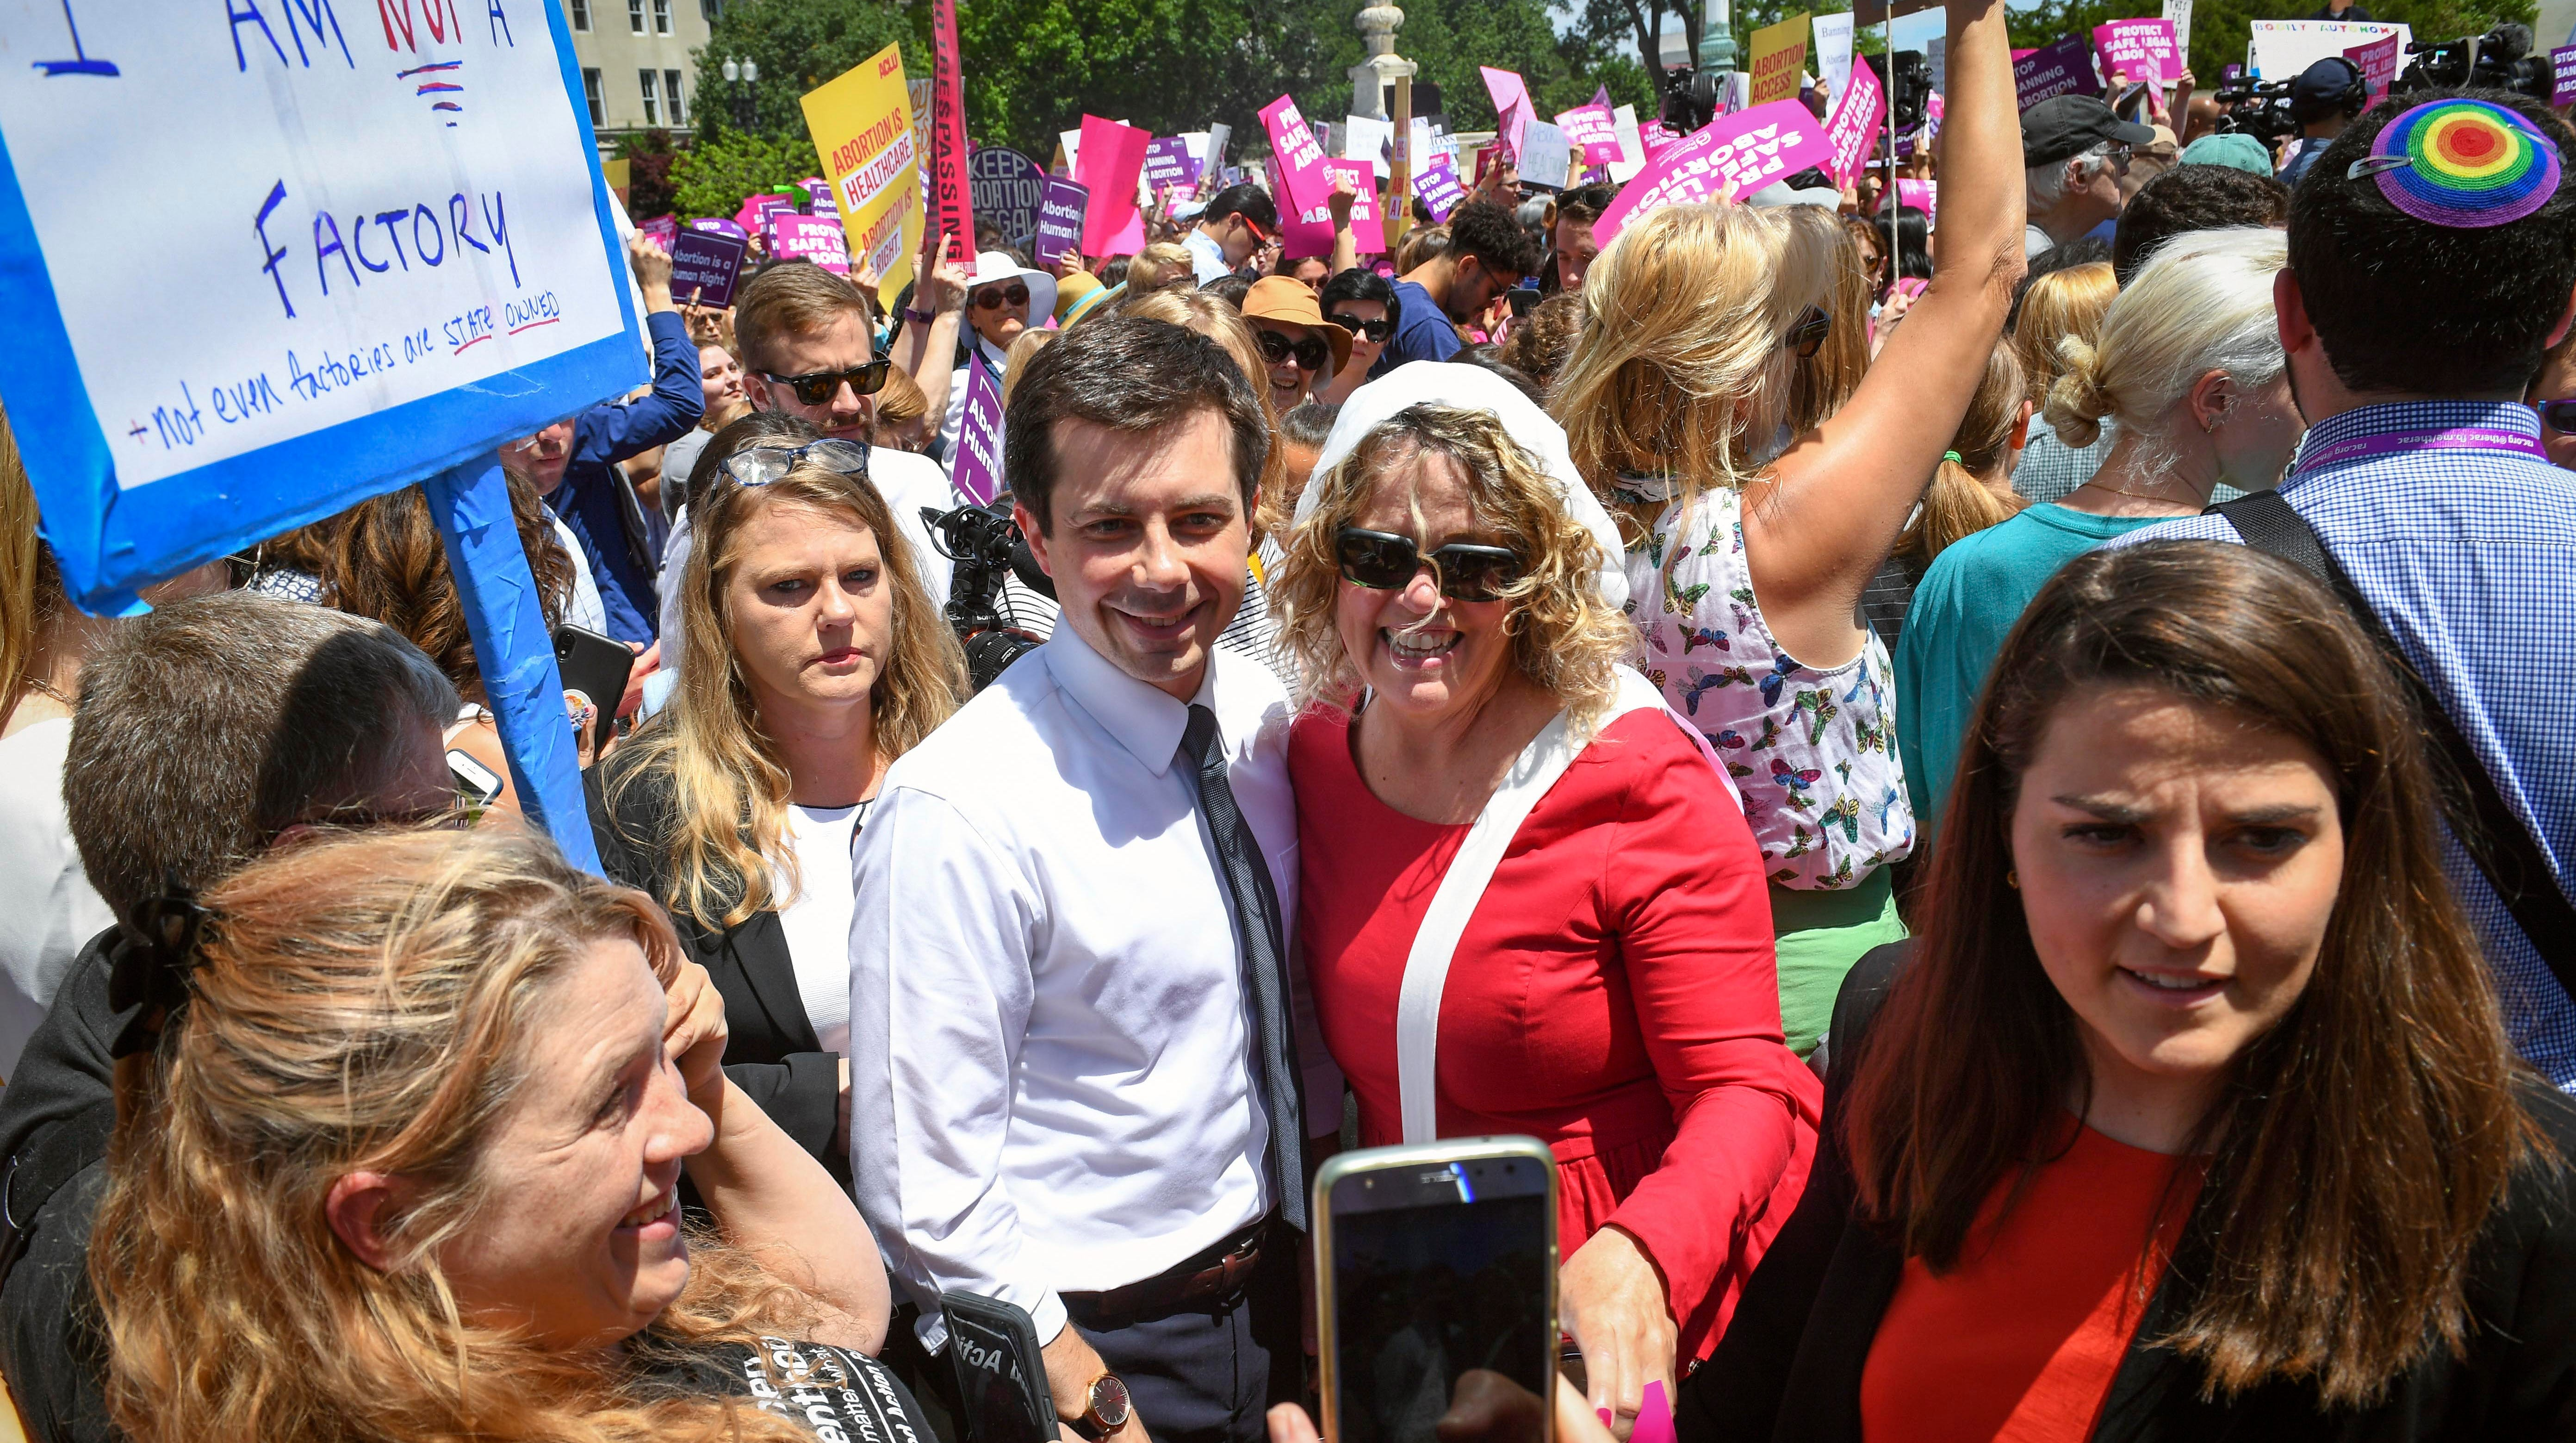 Democratic Presidential candidate Pete Buttigieg, the mayor of South Bend, Indiana, walks through protesters who rallied to stop the abortion bans in the United States on the steps of the U.S. Supreme Court in Washington on May 21, 2019.